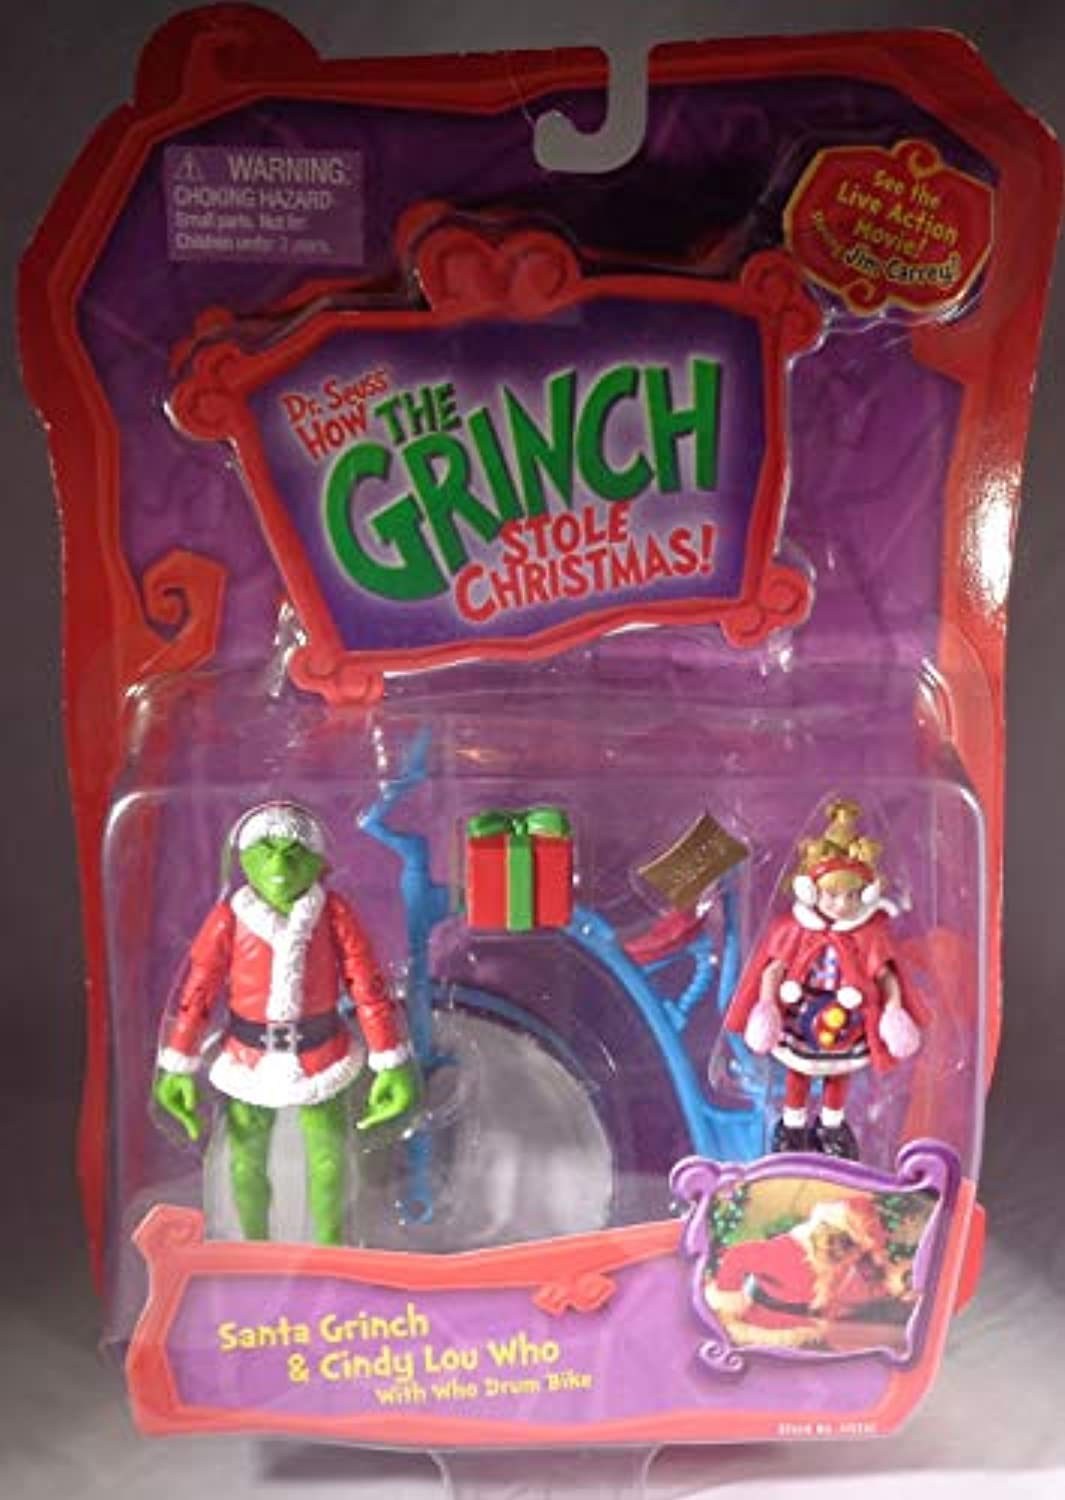 Dr. Seuss How the Grinch Stole Christmas Action Figure Set  Santa Grinch & Cindy Lou Who with Who Drum Bike